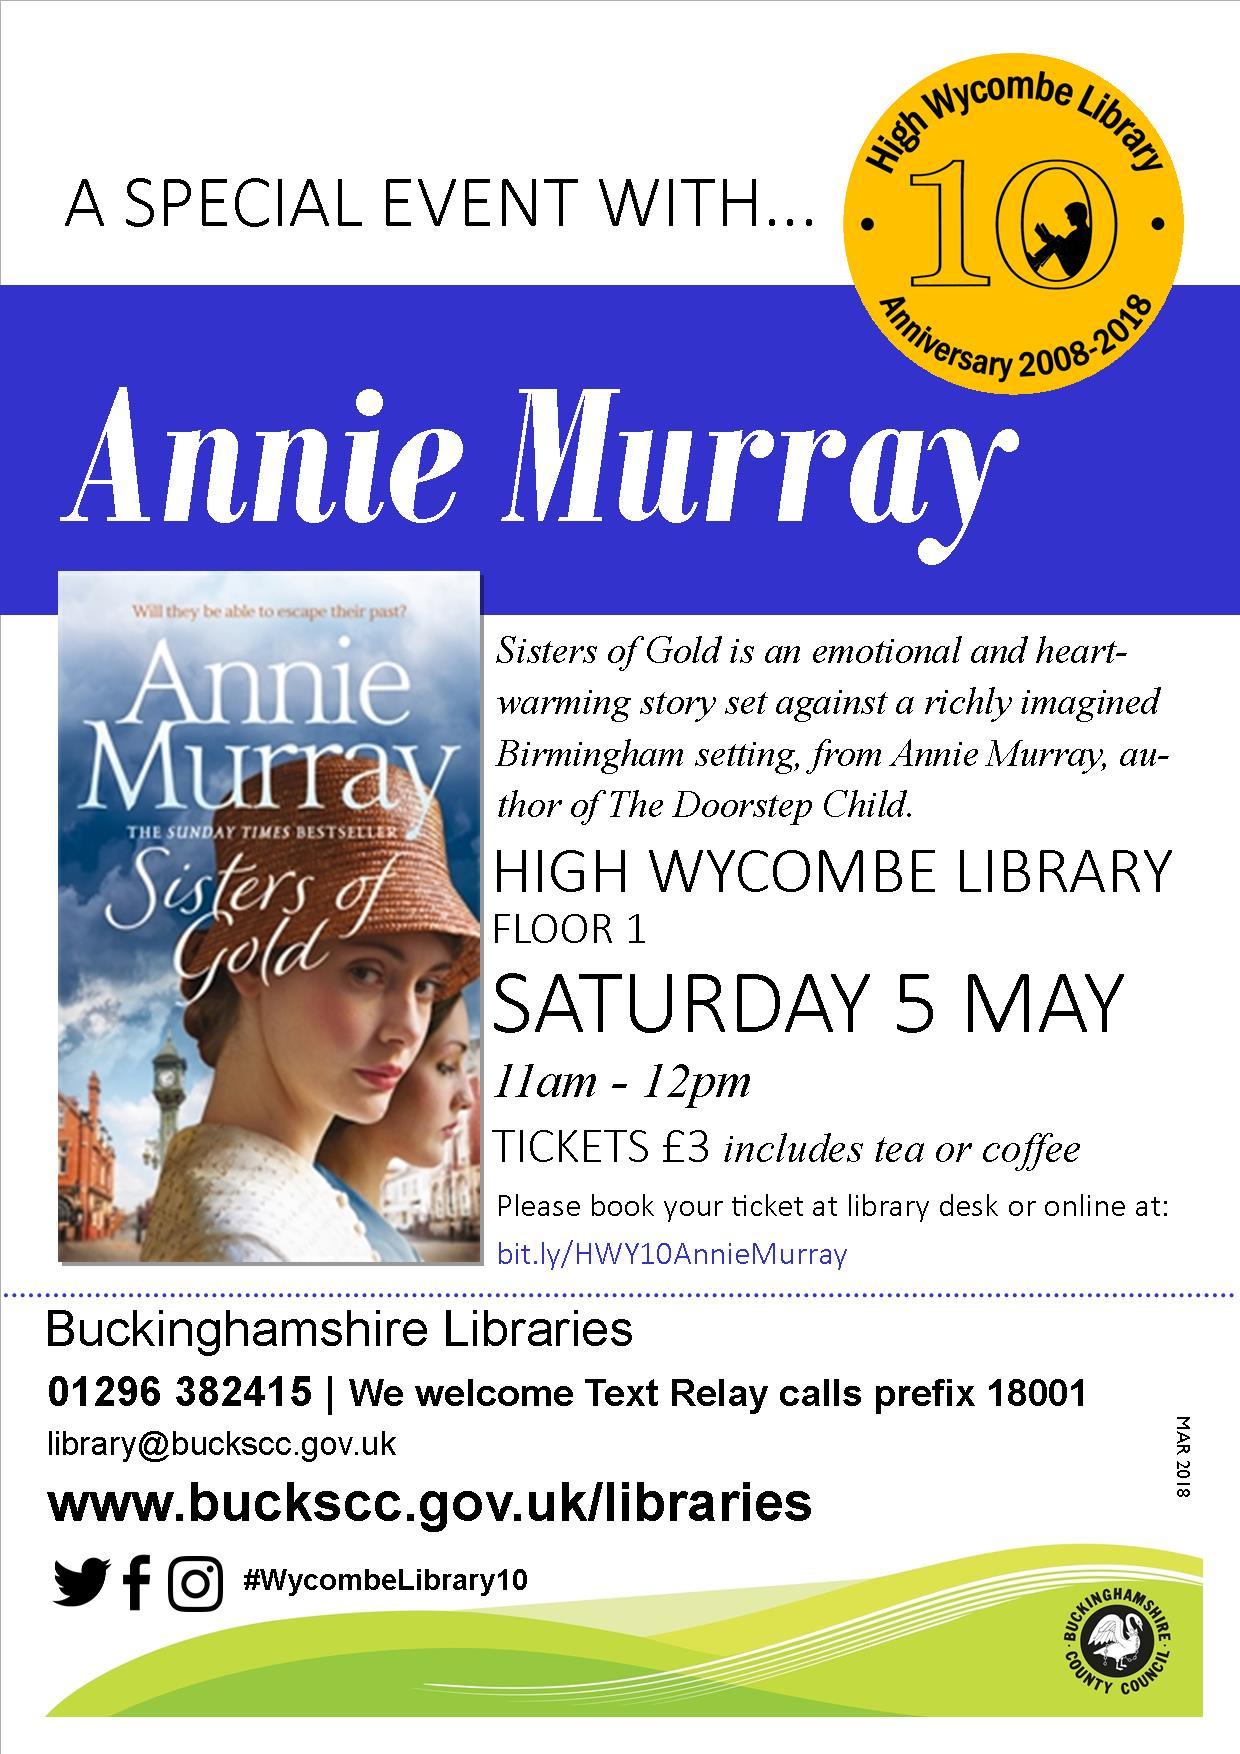 A Special Event with Annie Murray